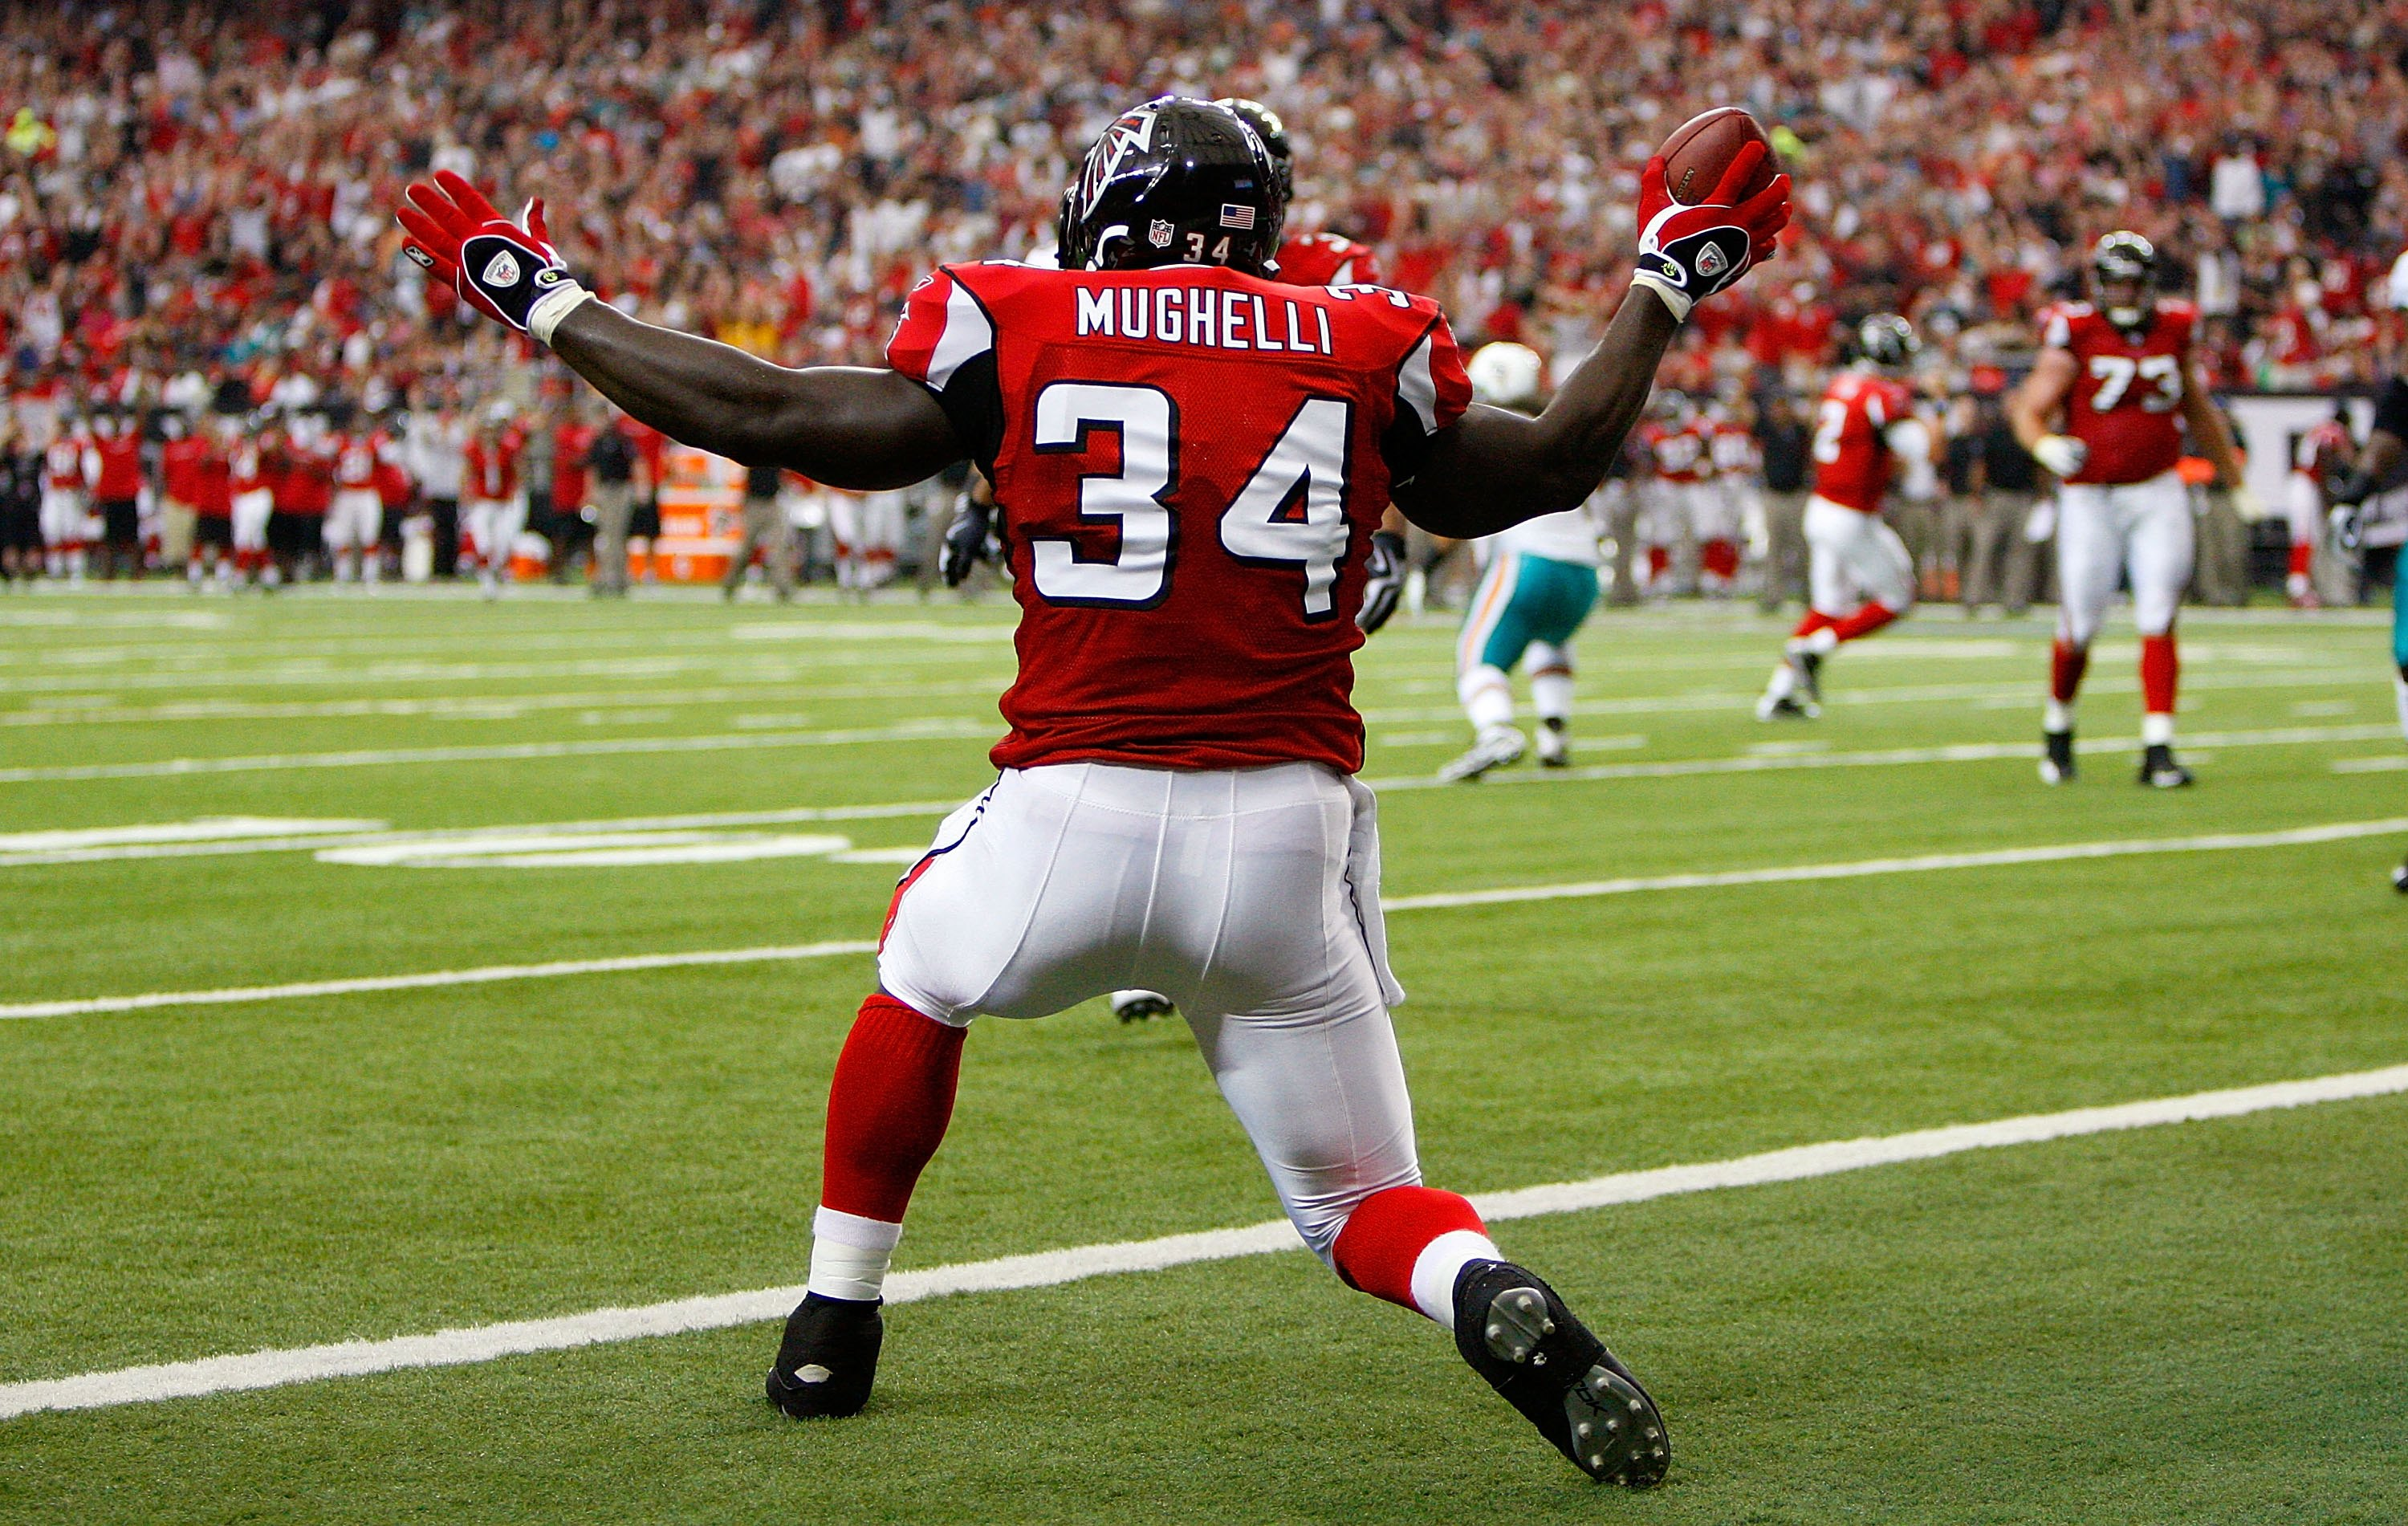 ATLANTA - SEPTEMBER 13:  Ovie Mughelli #34 of the Atlanta Falcons celebrates scoring a touchdown against the Miami Dolphins at Georgia Dome on September 13, 2009 in Atlanta, Georgia.  (Photo by Kevin C. Cox/Getty Images)